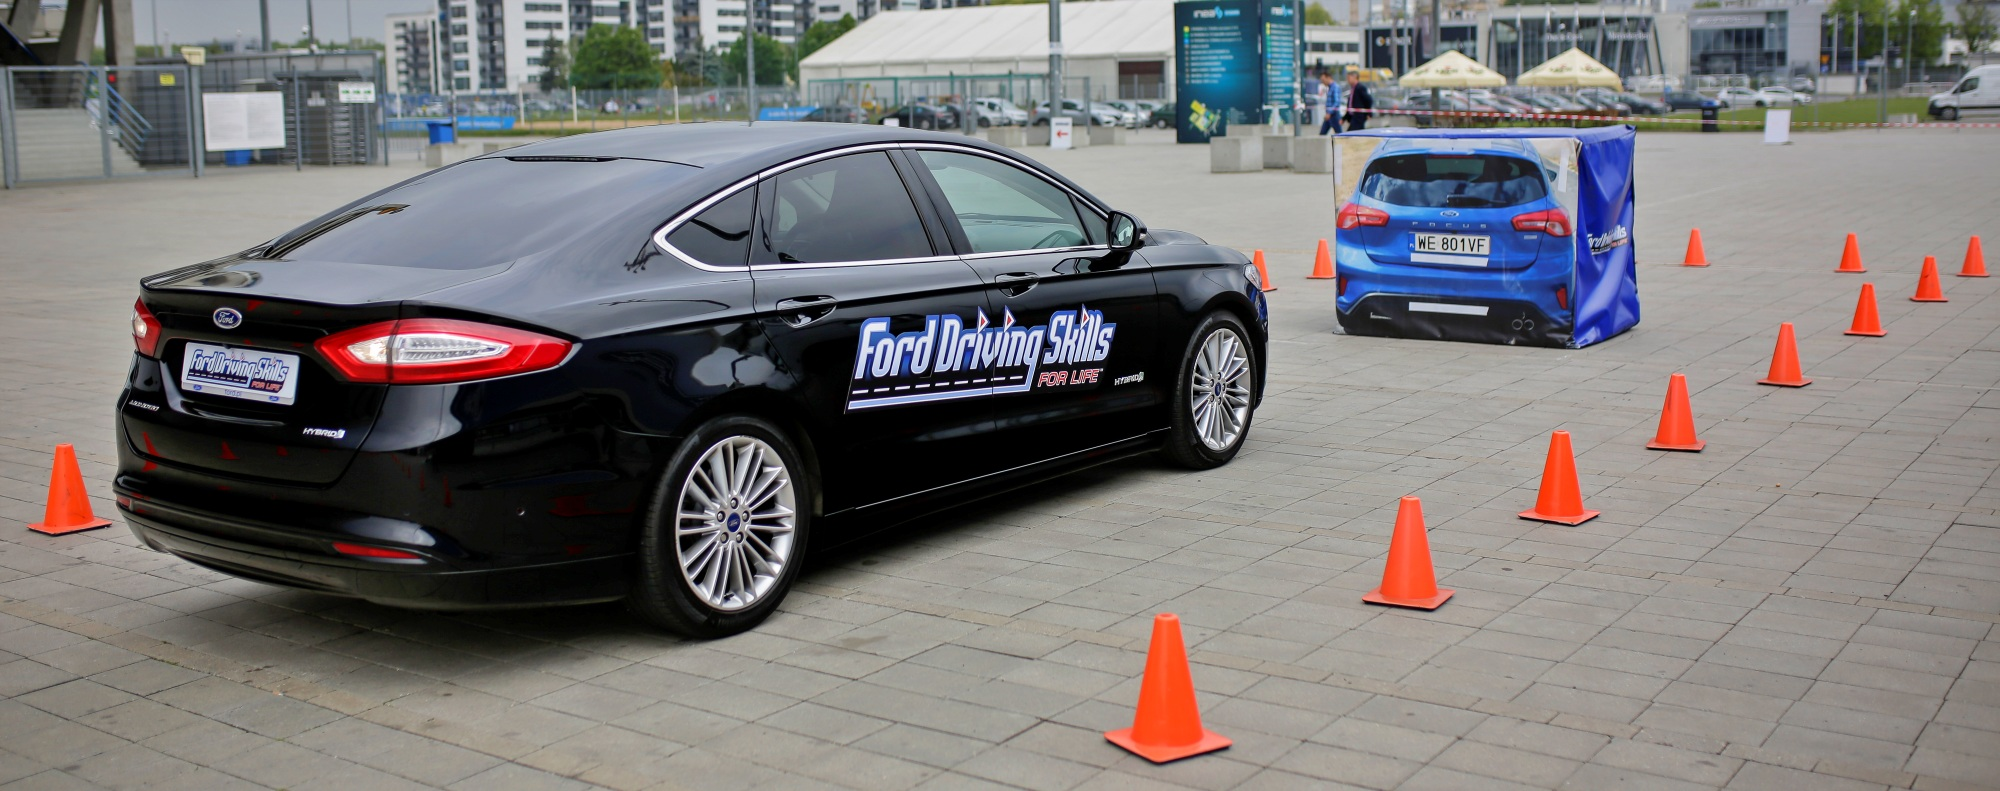 Ford DrivingSkills for Life